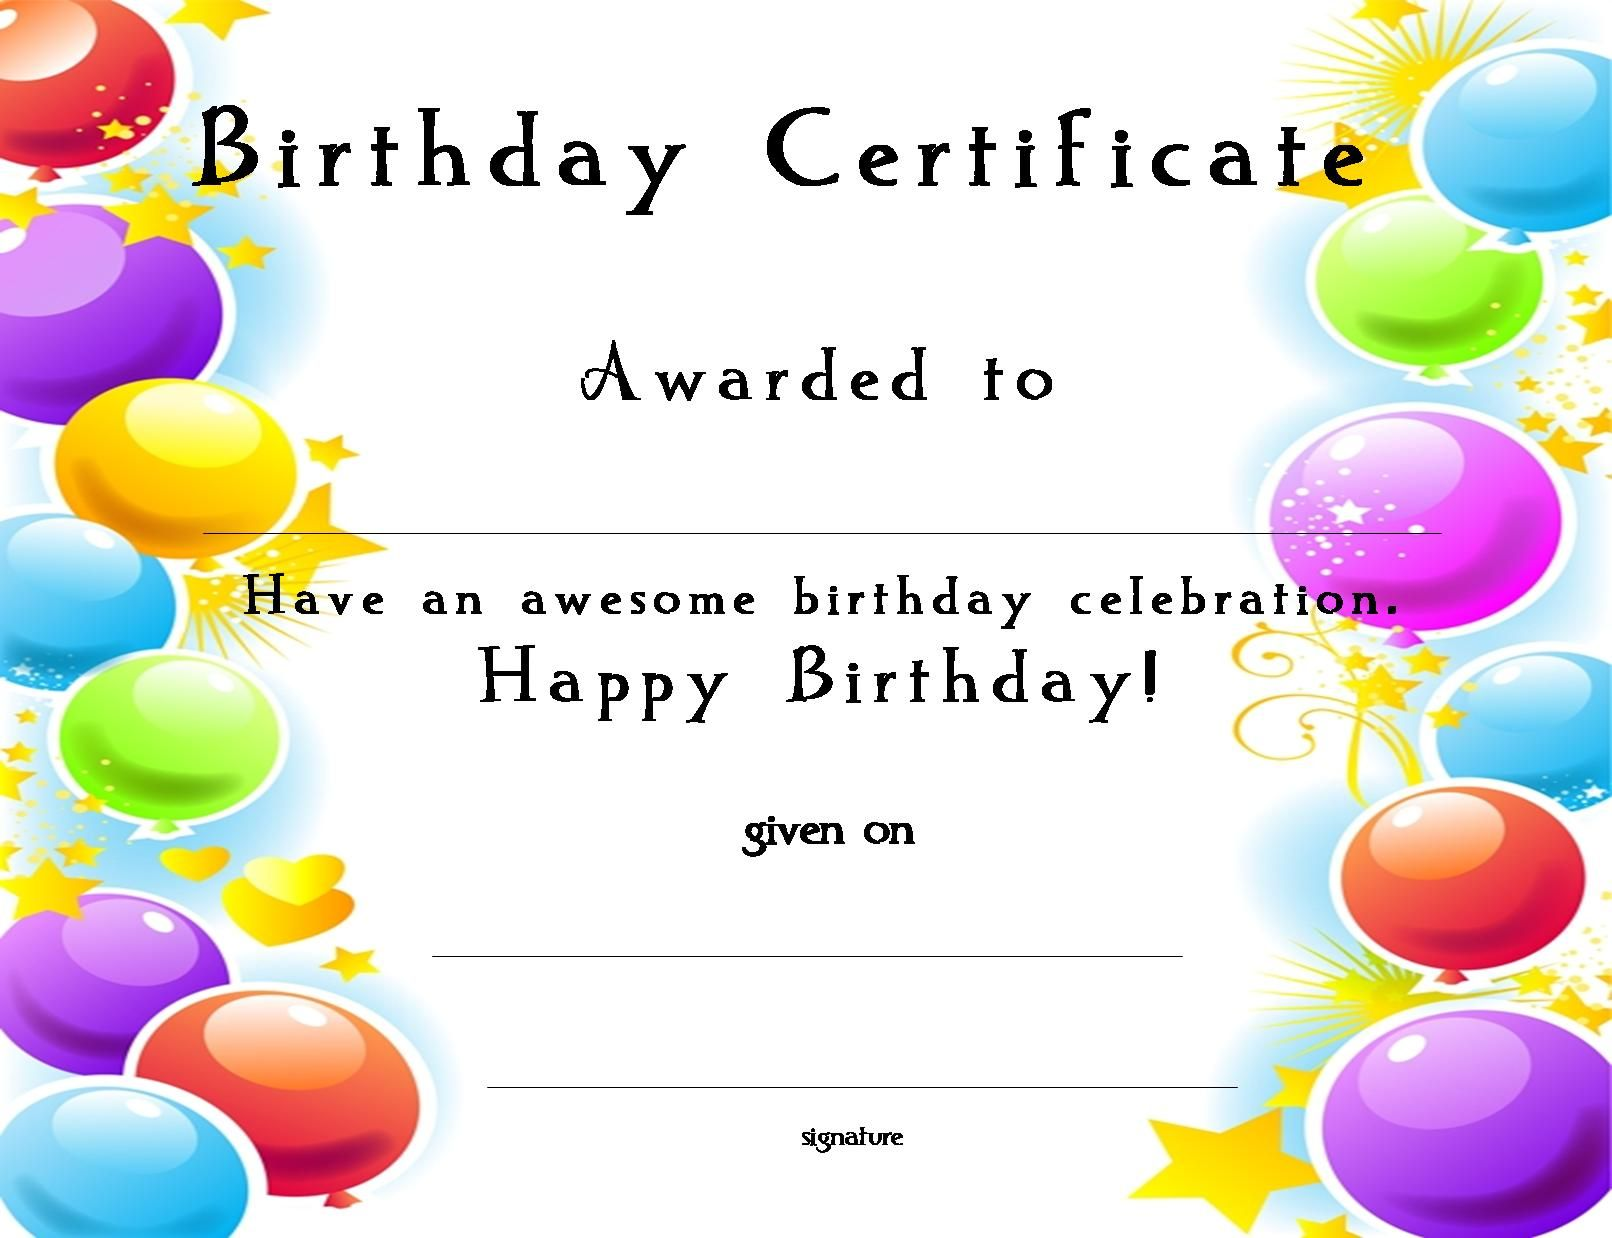 10 best church certificates images on pinterest free printable certificate template for kids free printable certificate templates birthday certificate templatesawesome site for bday and other free certificates for yadclub